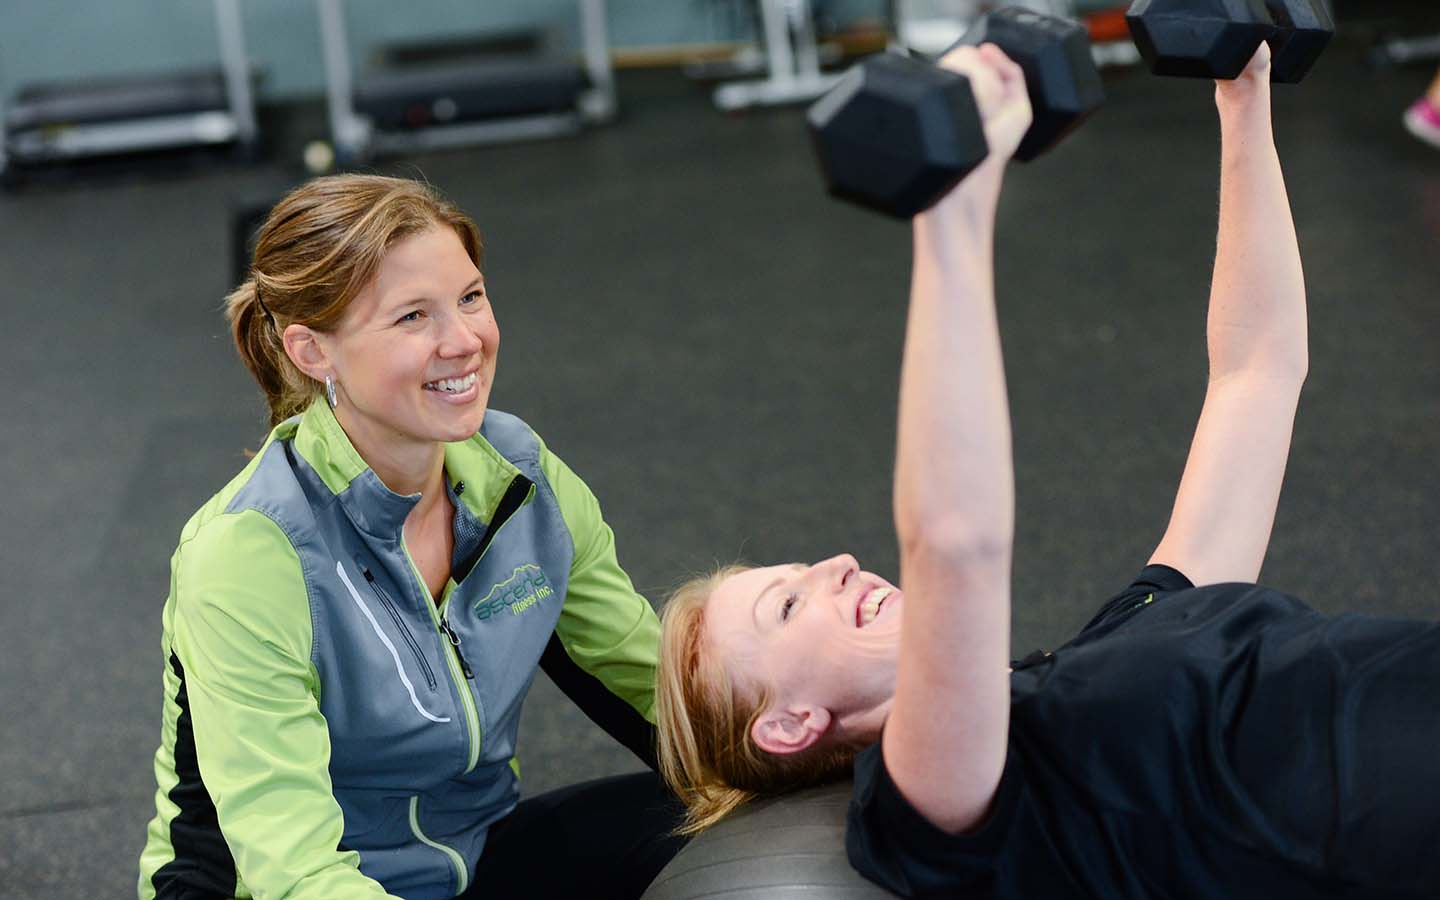 A woman exercises under the guidance of a woman coach